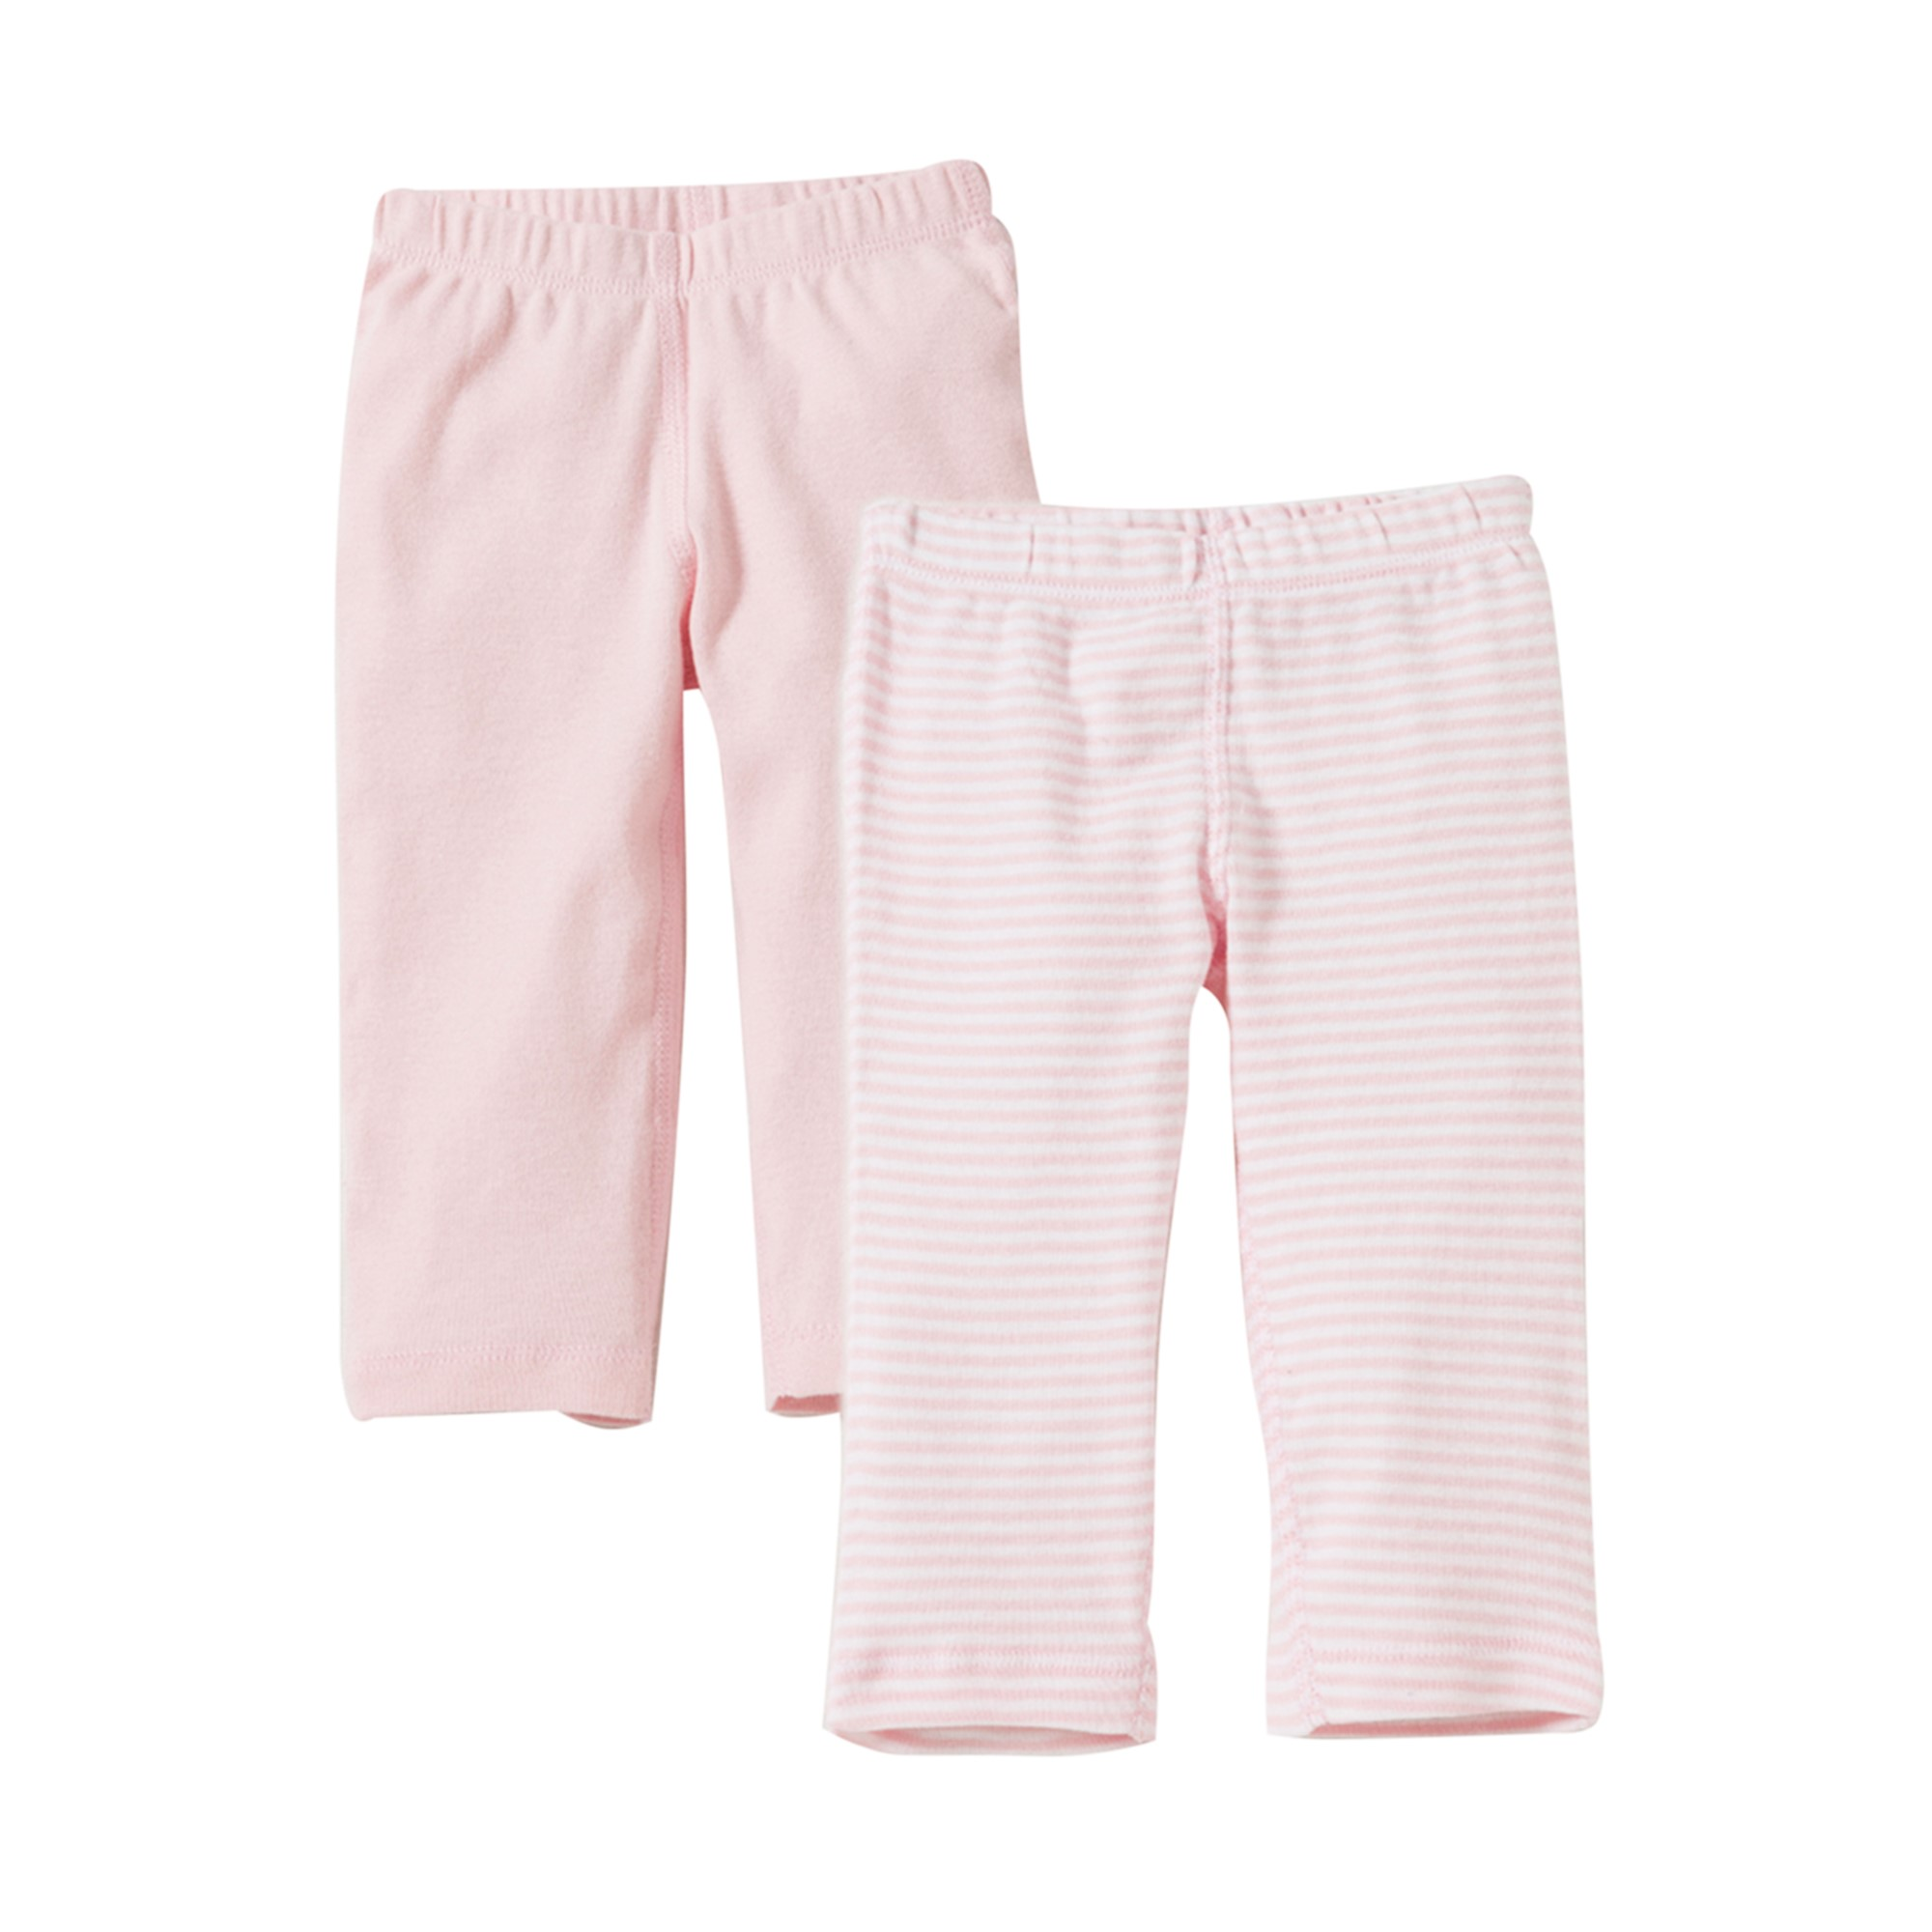 Organic Footless Pants, Solid and Stripe, 9M, Blossom, 2 Ct